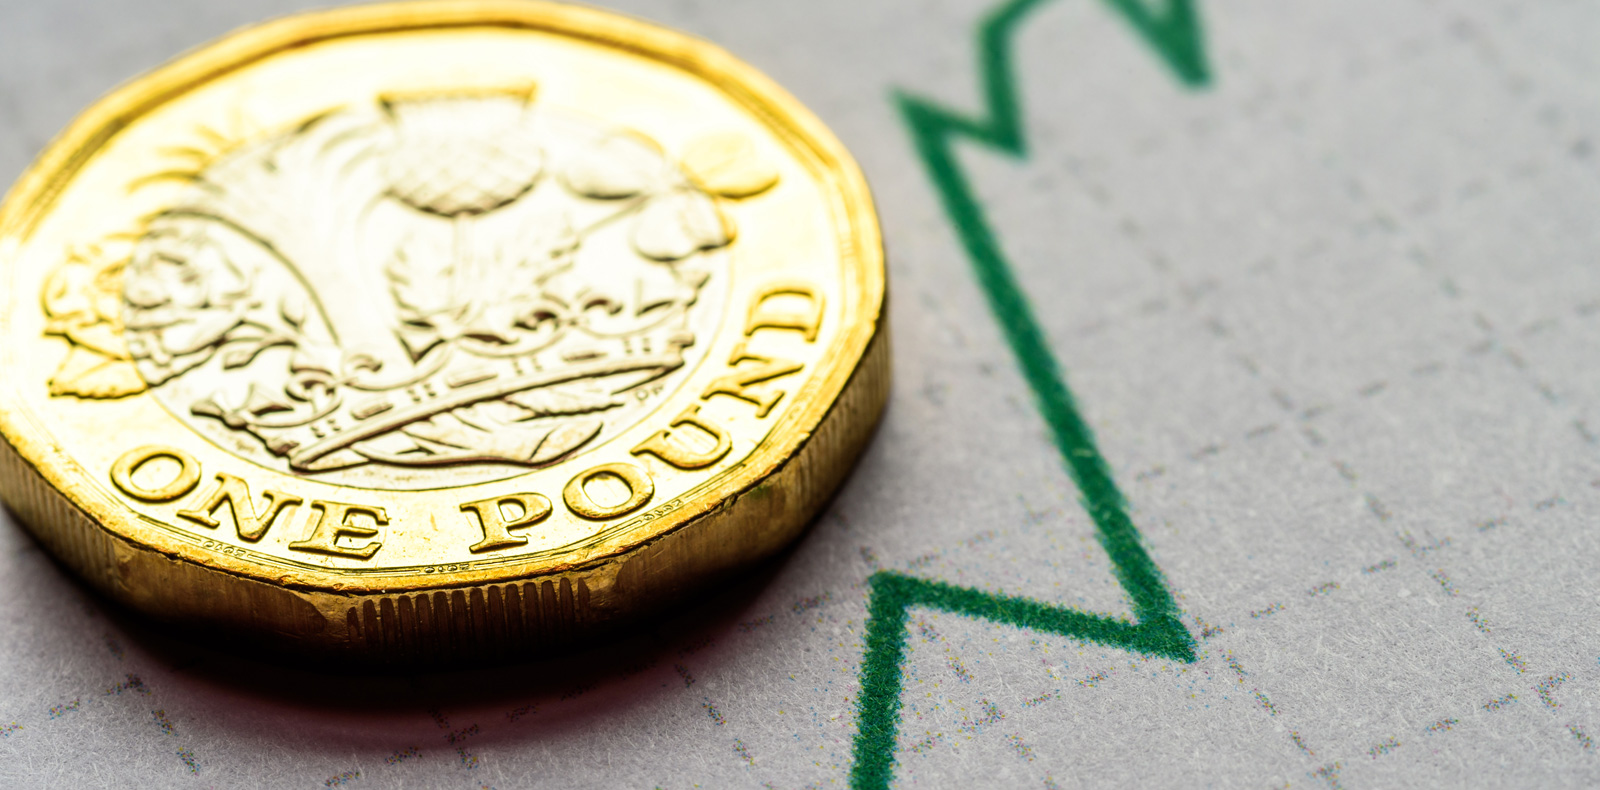 Sterling has continued to make gains against the euro and US dollar this week, but will GBP hold onto its gains and what is likely to impact the currency's value?